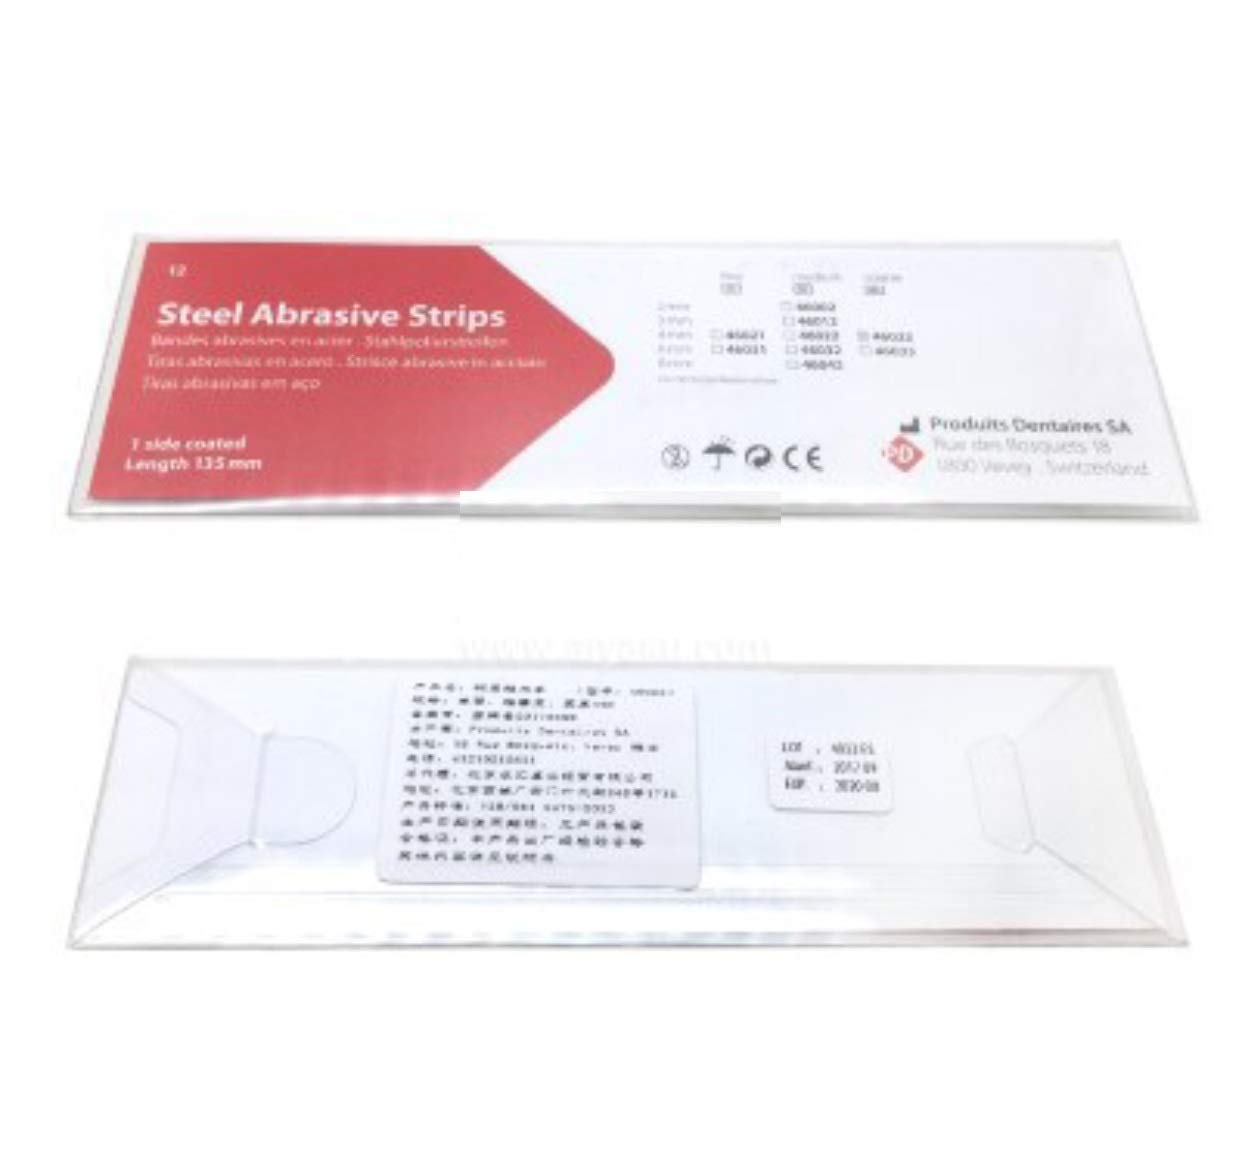 Dental PD Steel Abrasive Strips 1 side coated length 135mm coarse 4mm 46023#